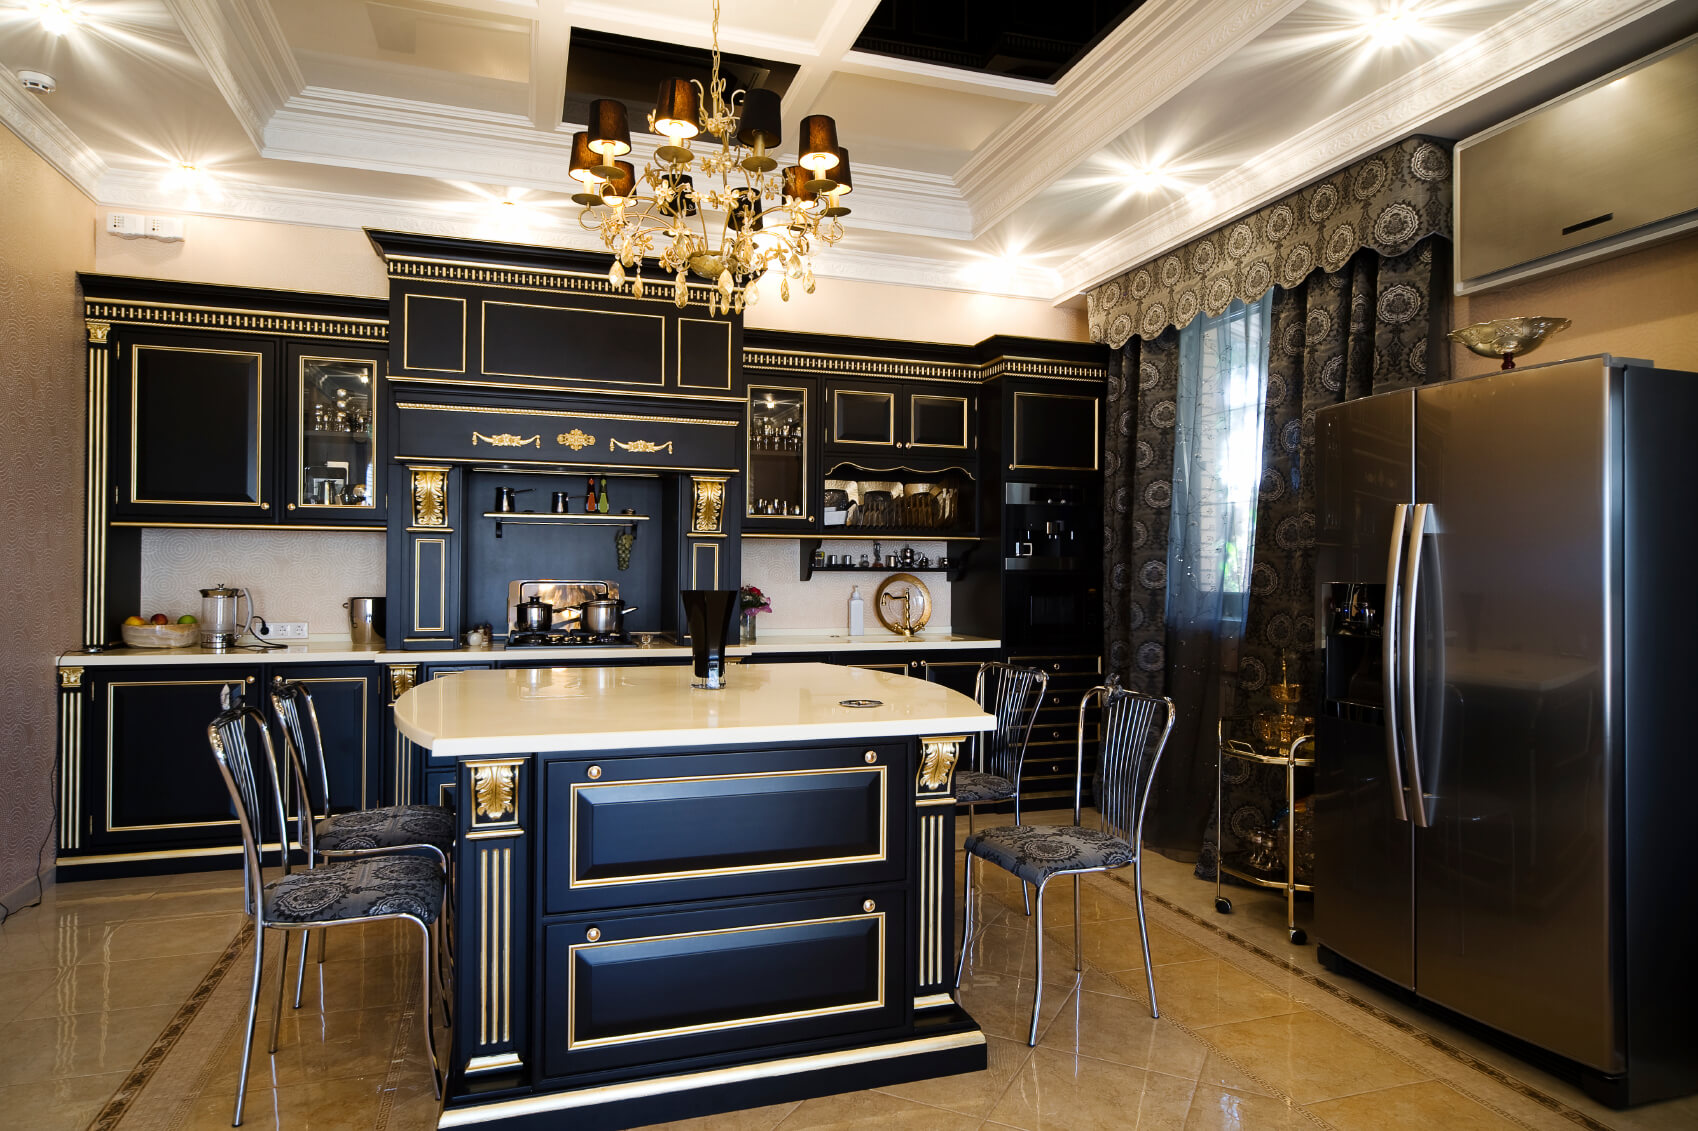 dark kitchen cabinets black kitchen countertops Ultra luxurious kitchen features gilded black wood cabinetry over beige marble flooring White marble countertops